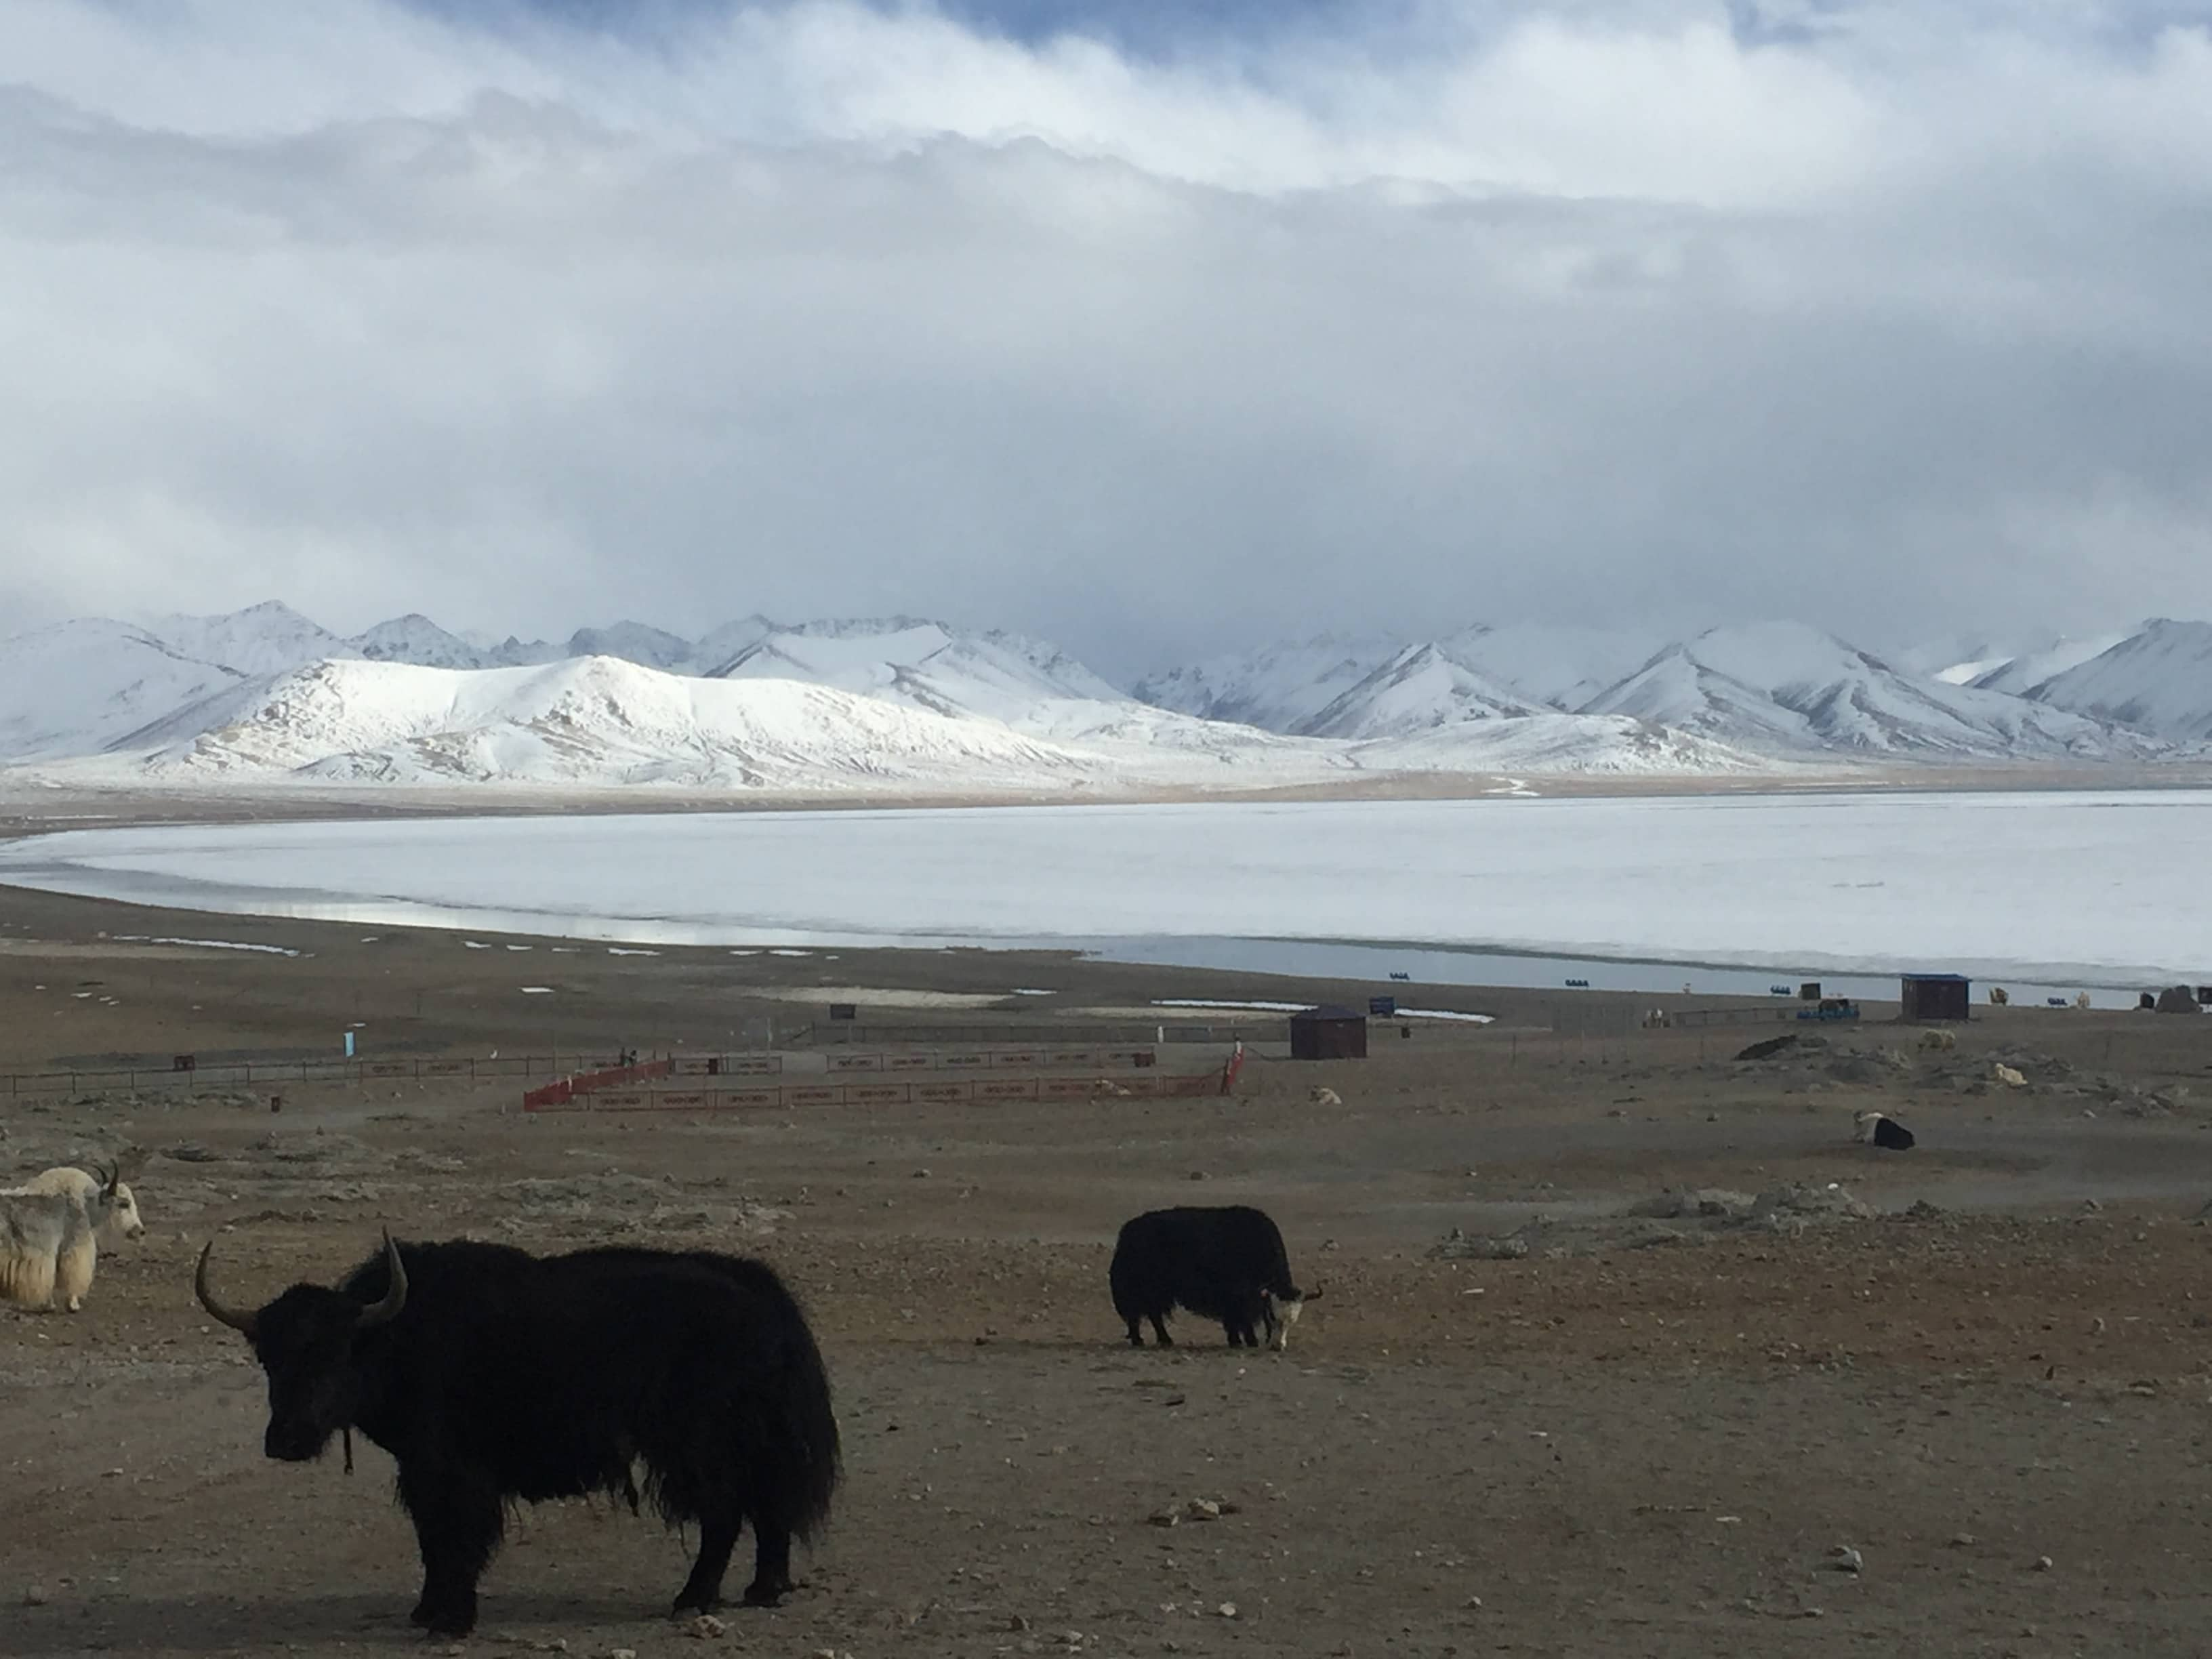 Yaks grazing by the Namtso Lake in Tibet